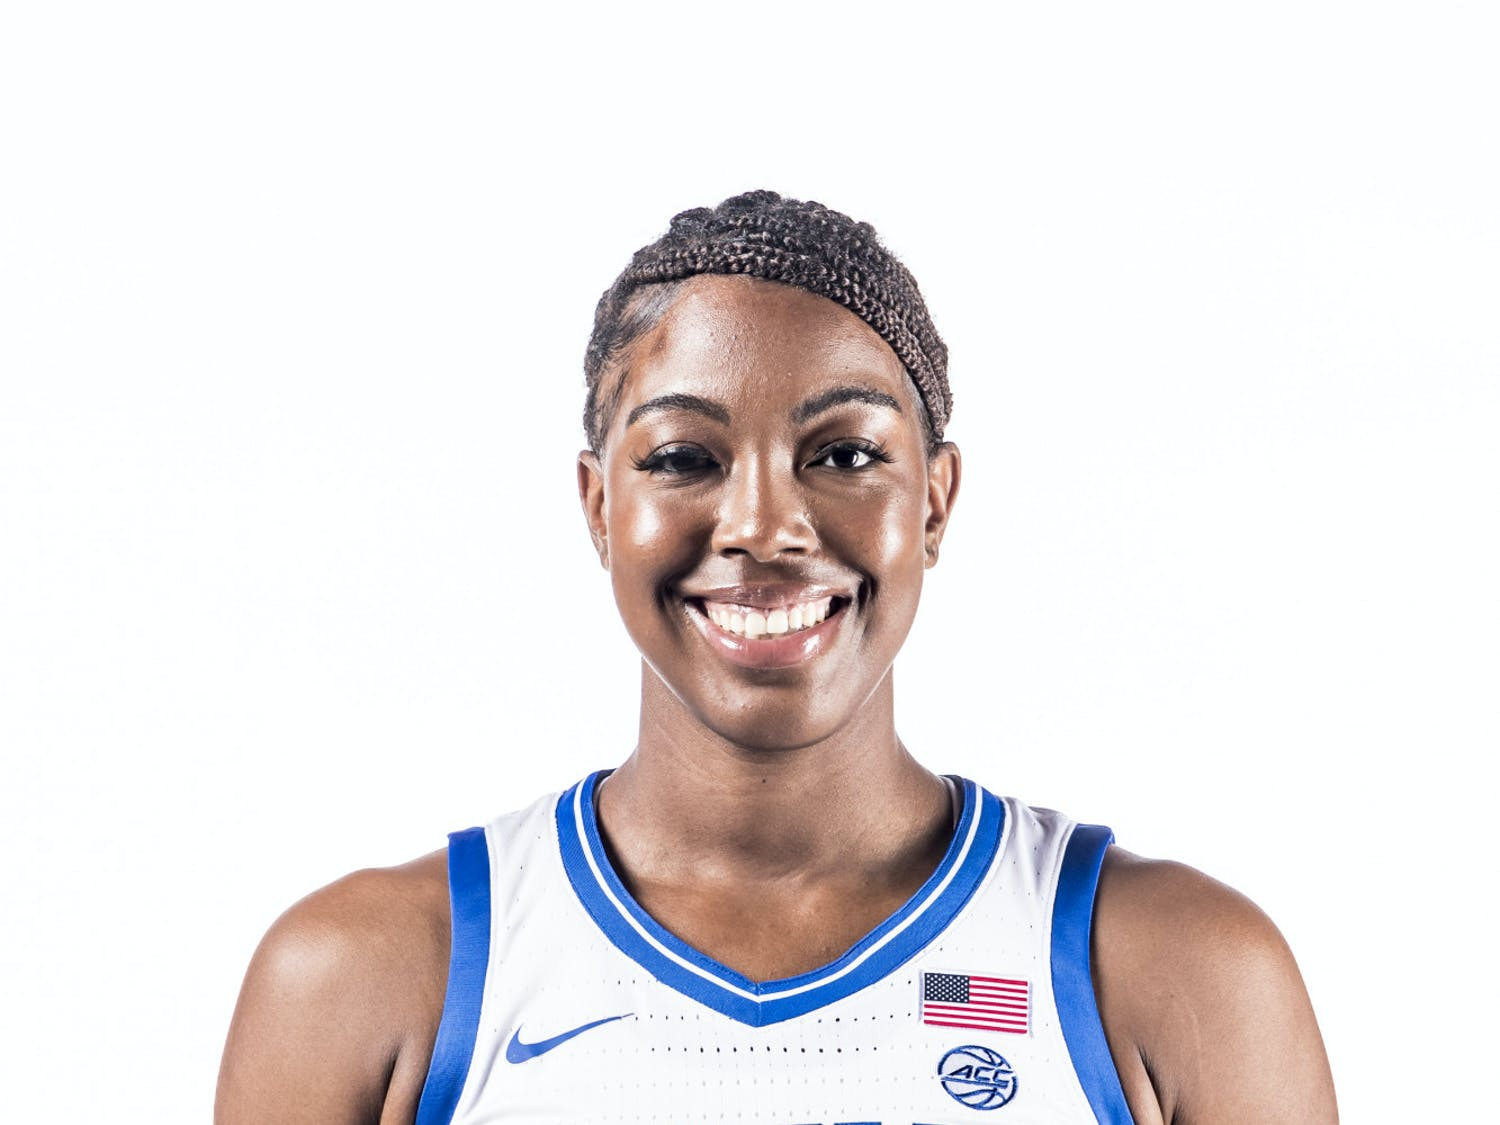 Duke has a reliable backup center in Finklea-Guity, who left Syracuse after a solid four-year career.